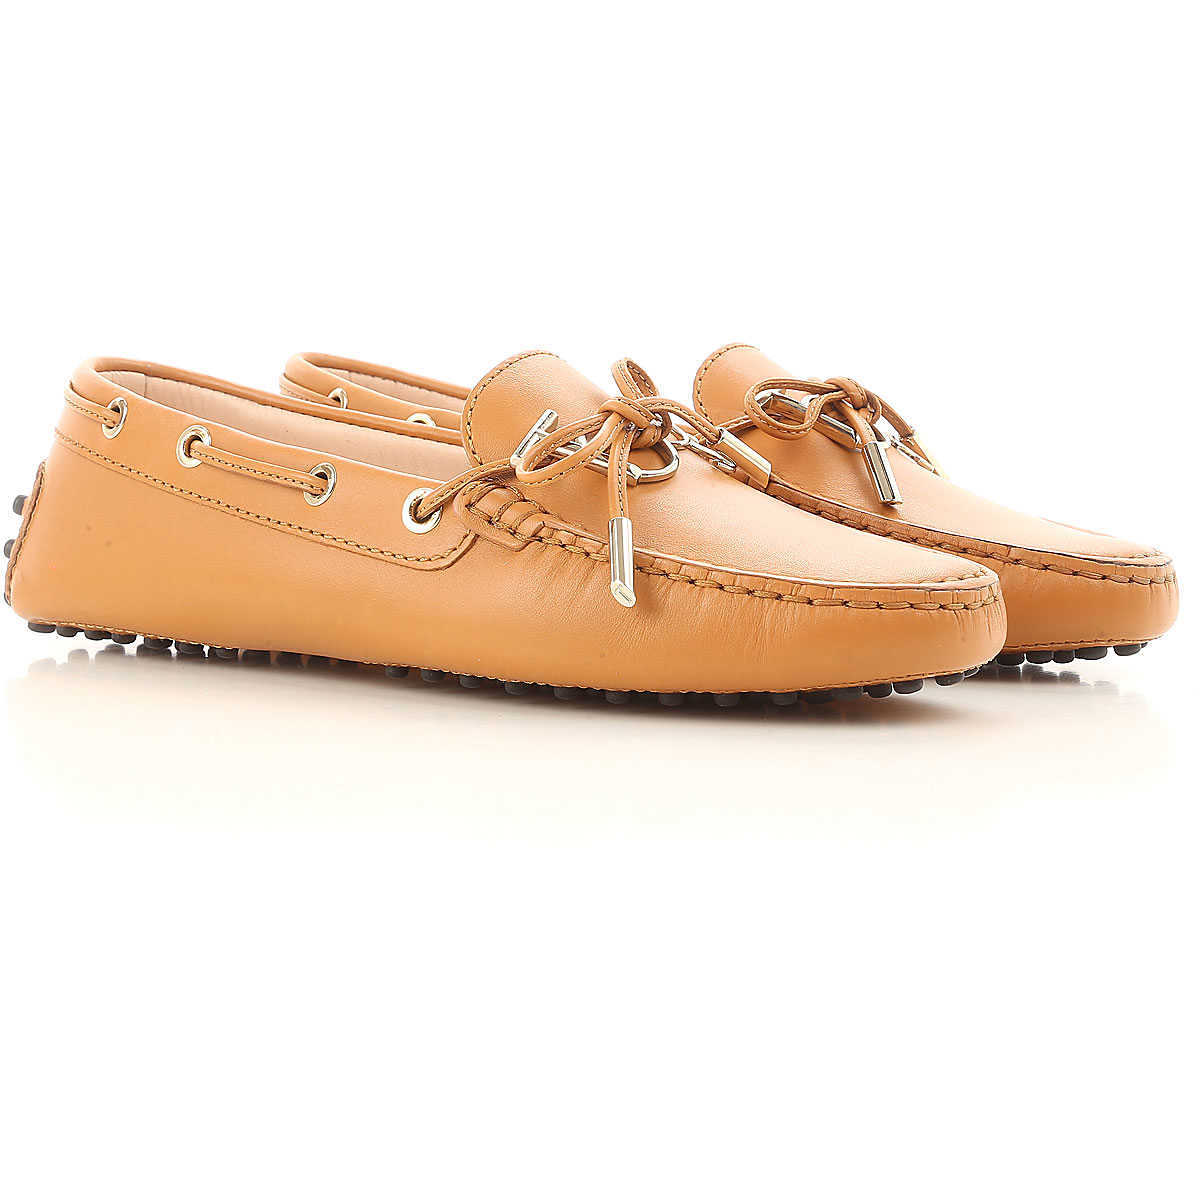 Tods Loafers for Women On Sale Light Leather Brown - GOOFASH